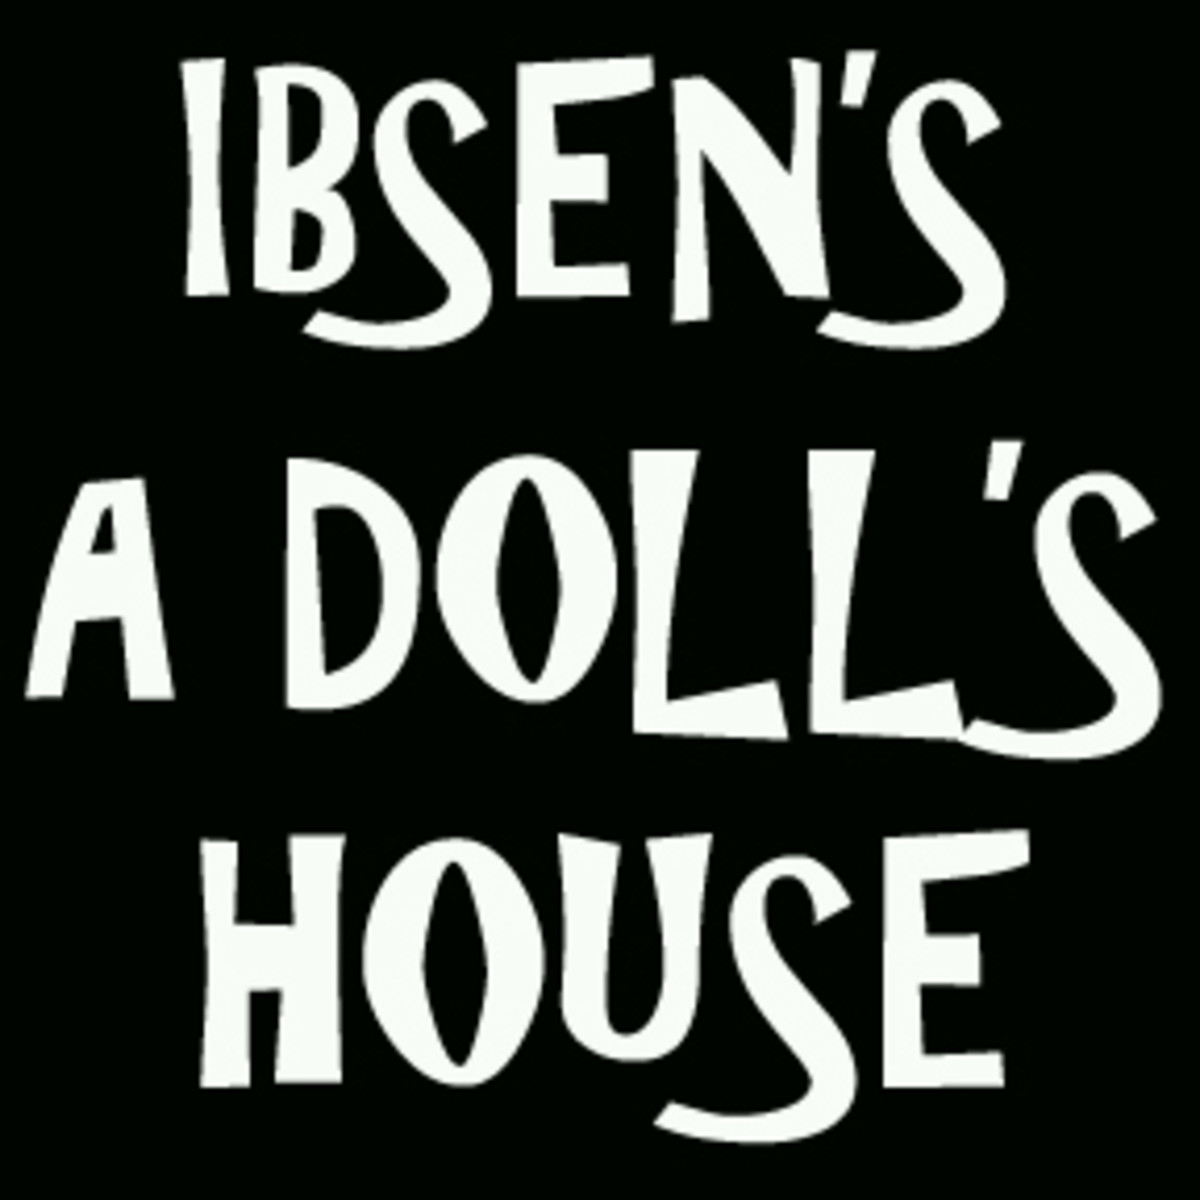 Henrick Ibsen's A Doll's House: the Heroine, the Doll, & the Repression of Nora